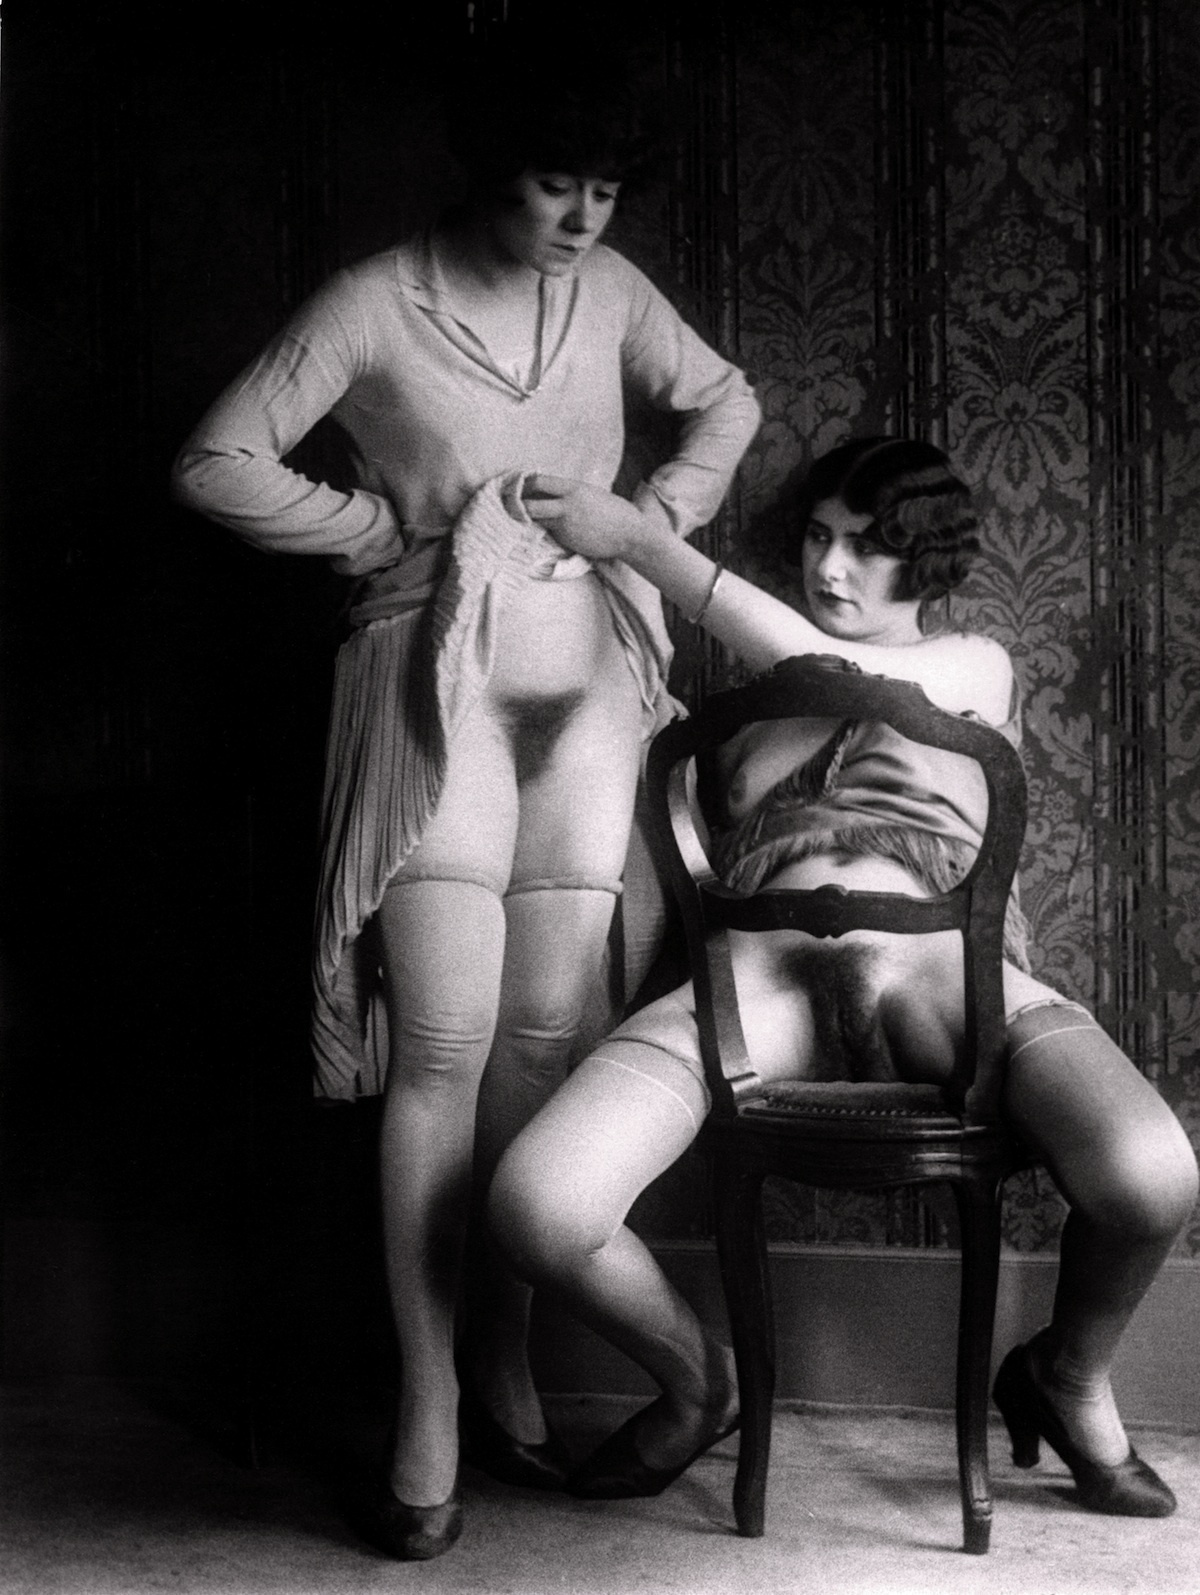 the-life-of-1930s-parisian-prostitutes-440-247-1424787783